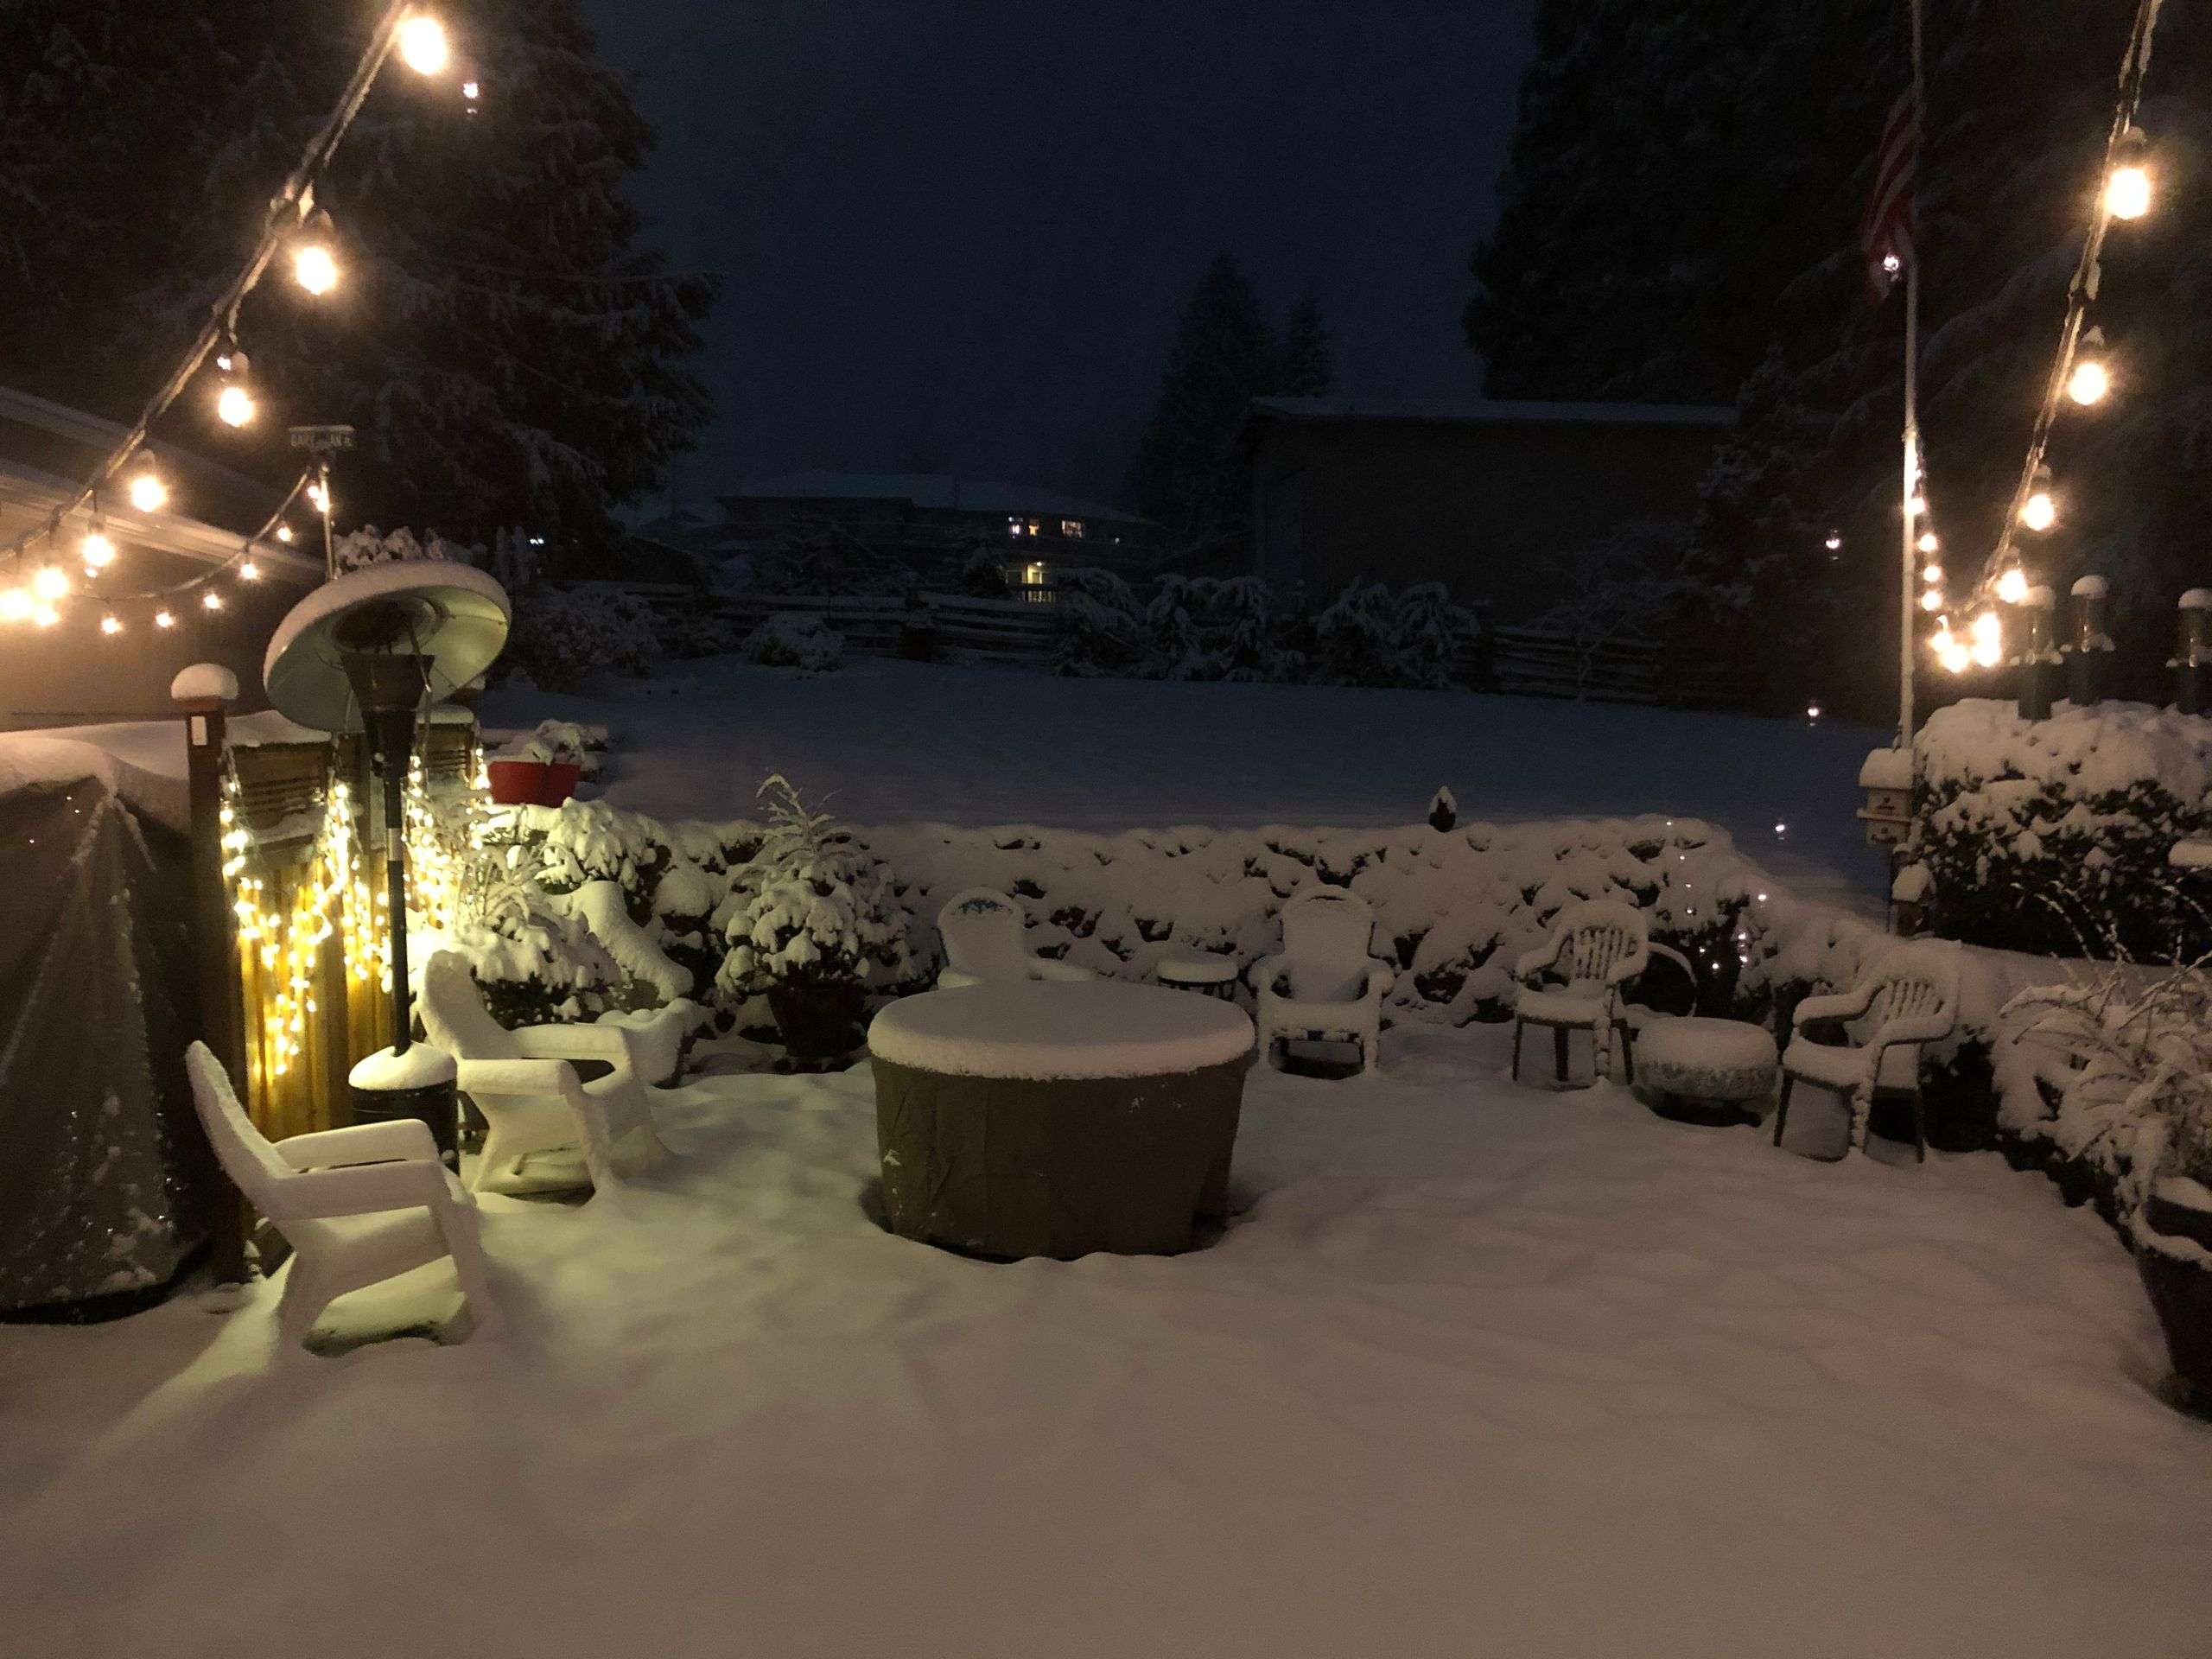 Snow in Port Angeles (Image: Gary and Jam Holmquist / Chime In)